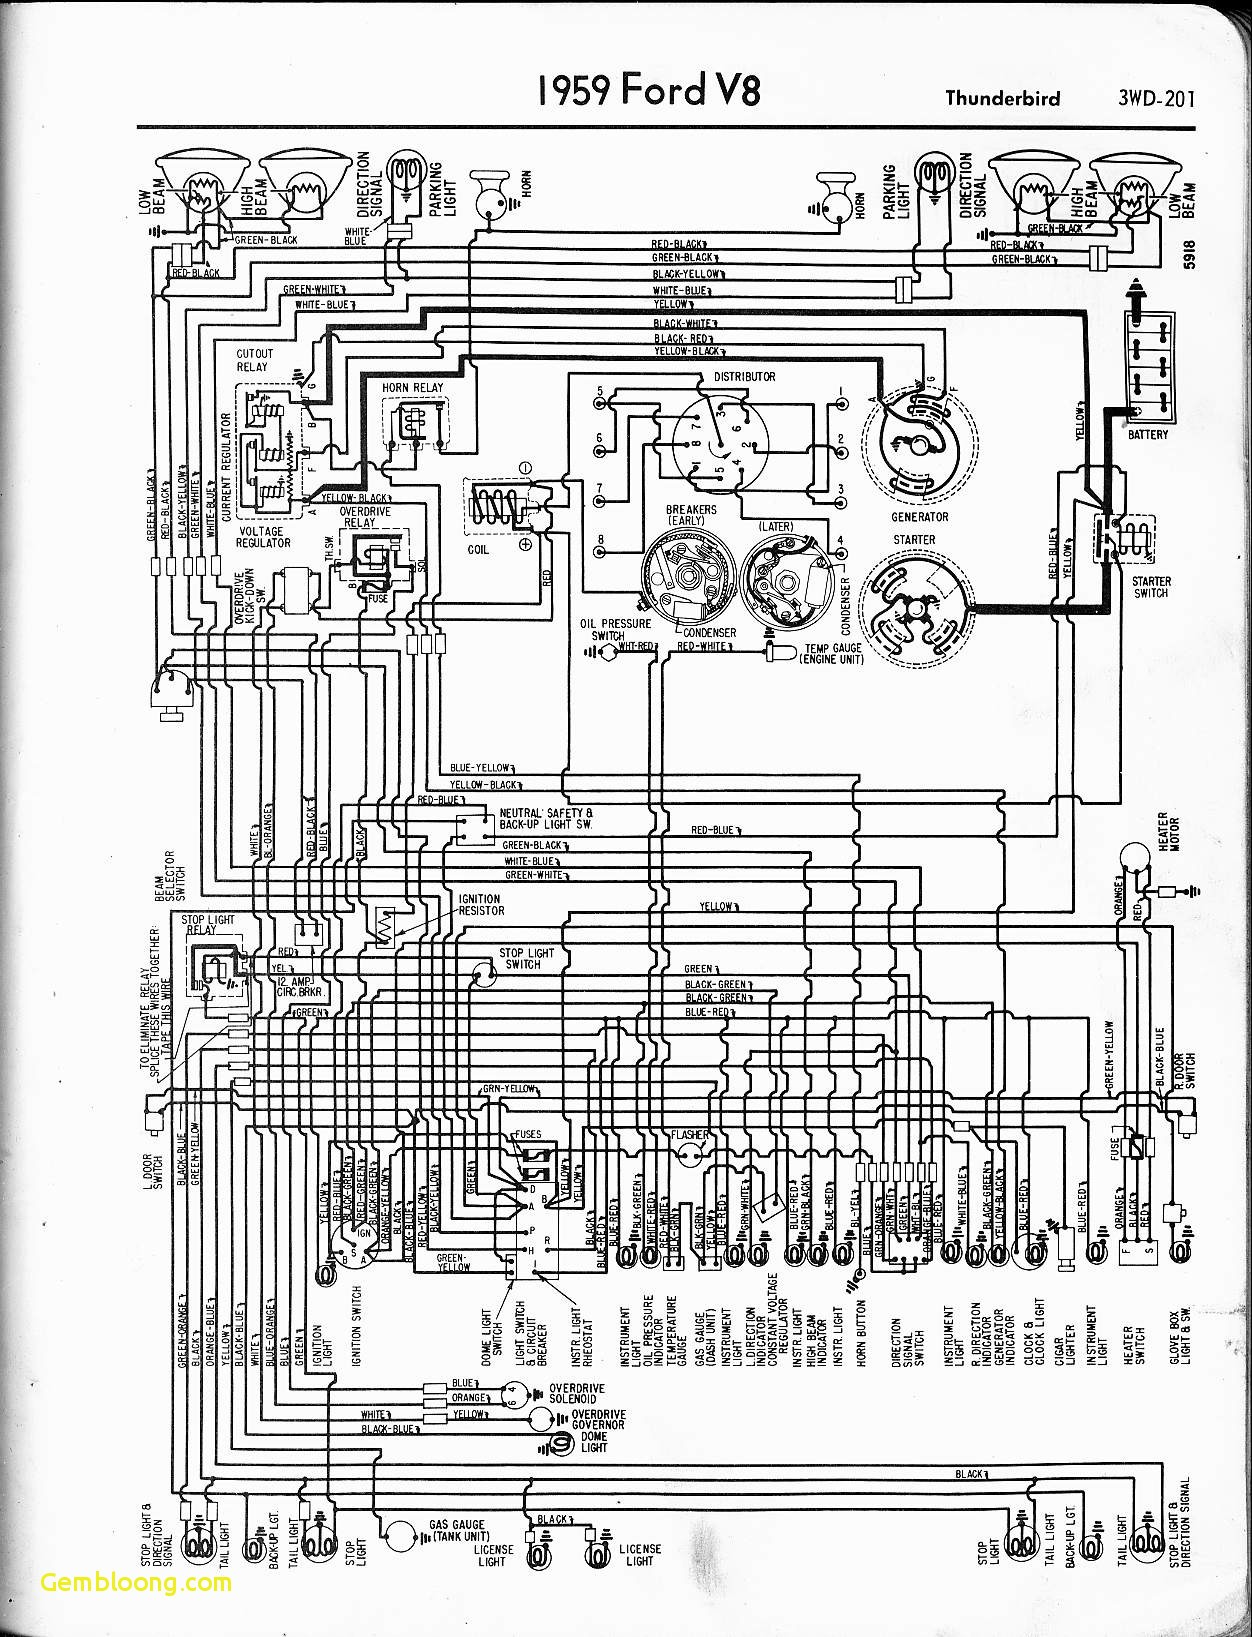 Diagram Of A Car Engine Download ford Trucks Wiring Diagrams ford F150 Wiring Diagrams Best Of Diagram Of A Car Engine